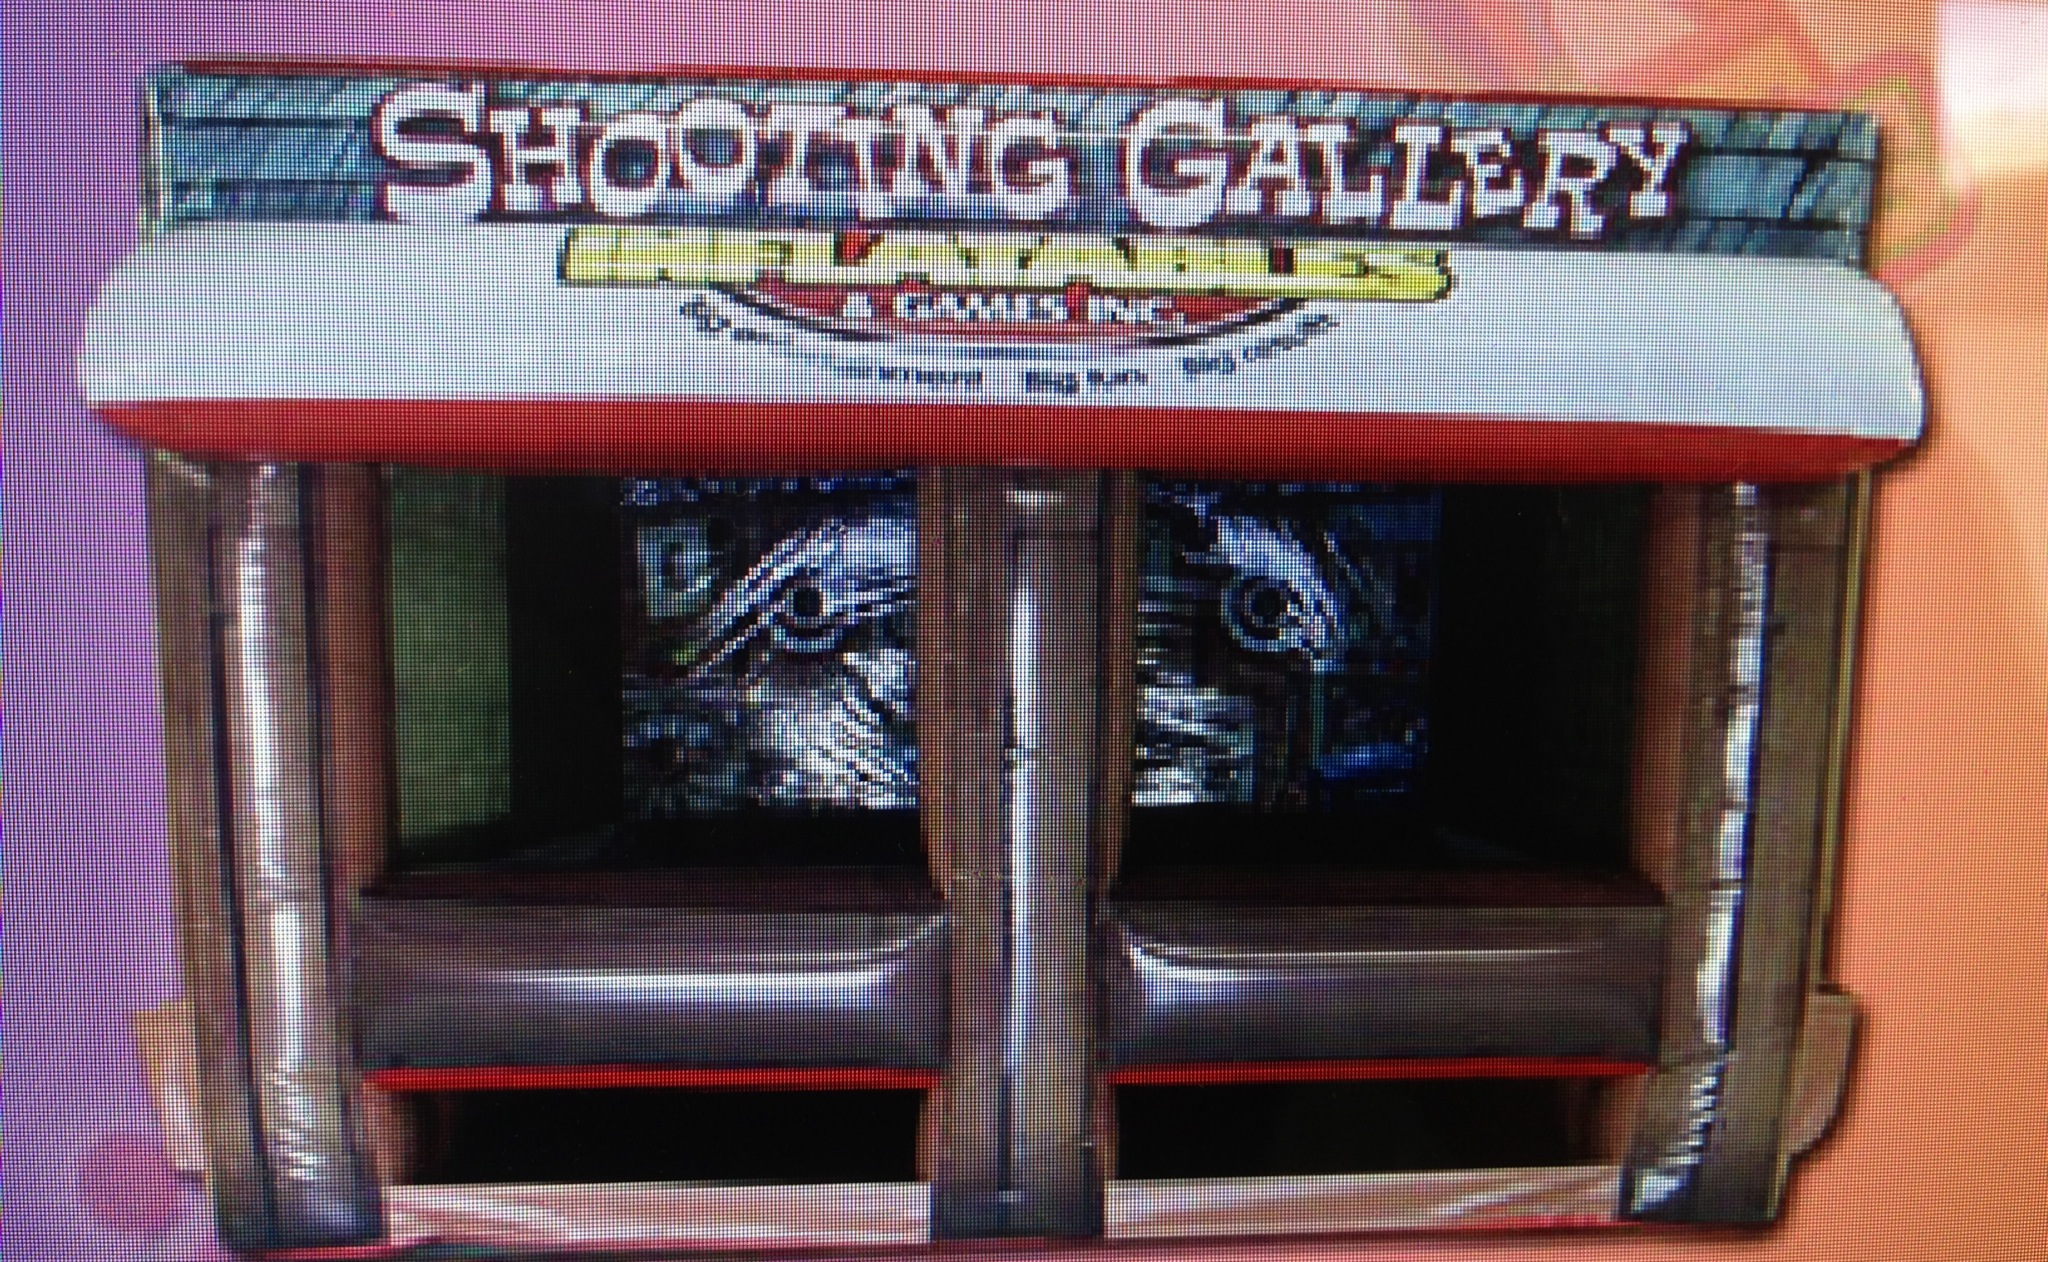 Shooting Gallery 3.0 15' x 15' x 12' Tall